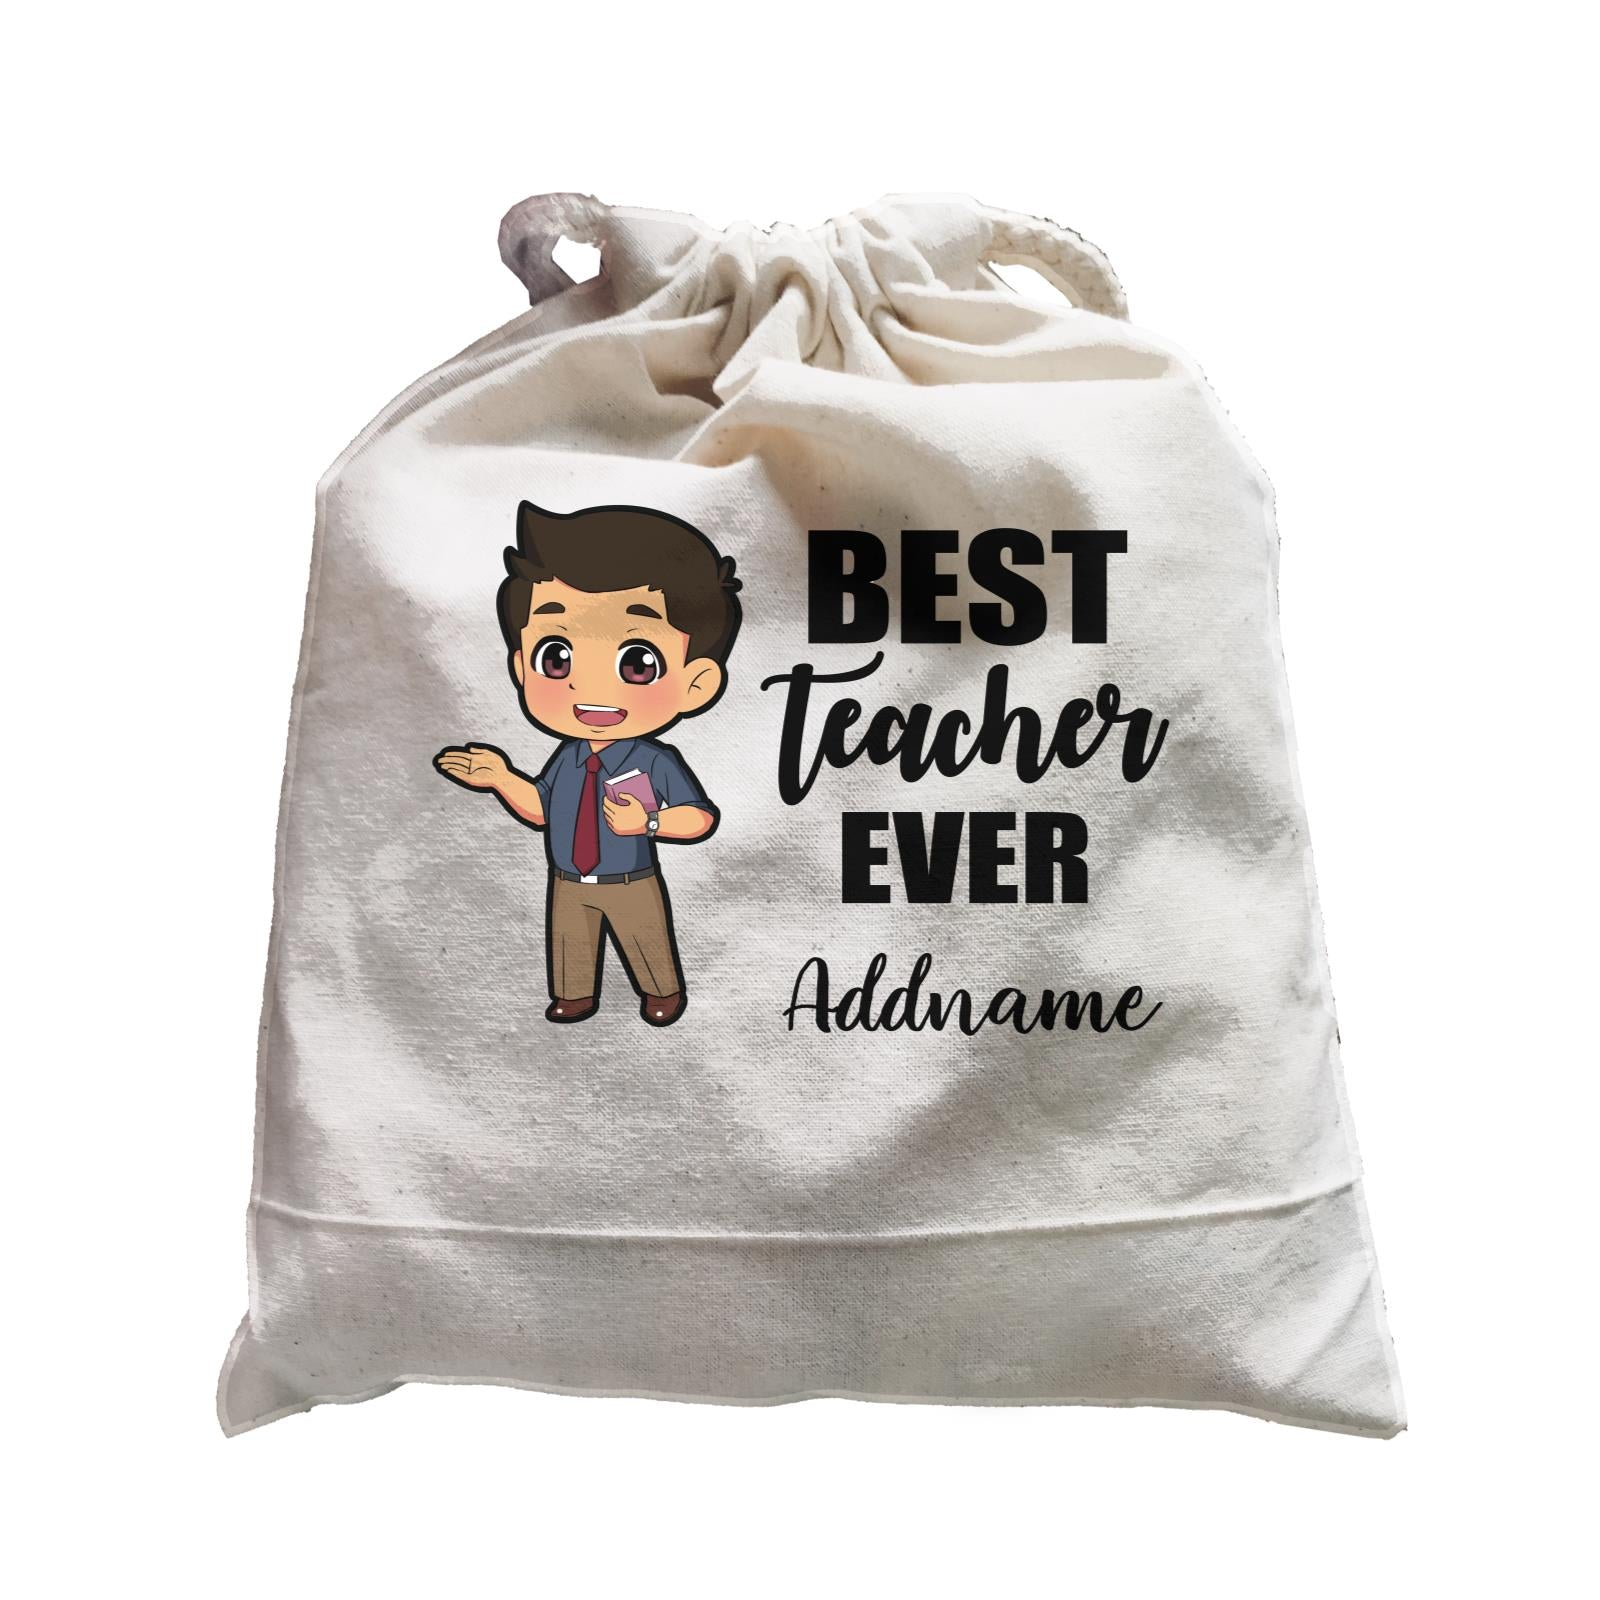 Chibi Teachers Malay Man Best Teacher Ever Addname Satchel